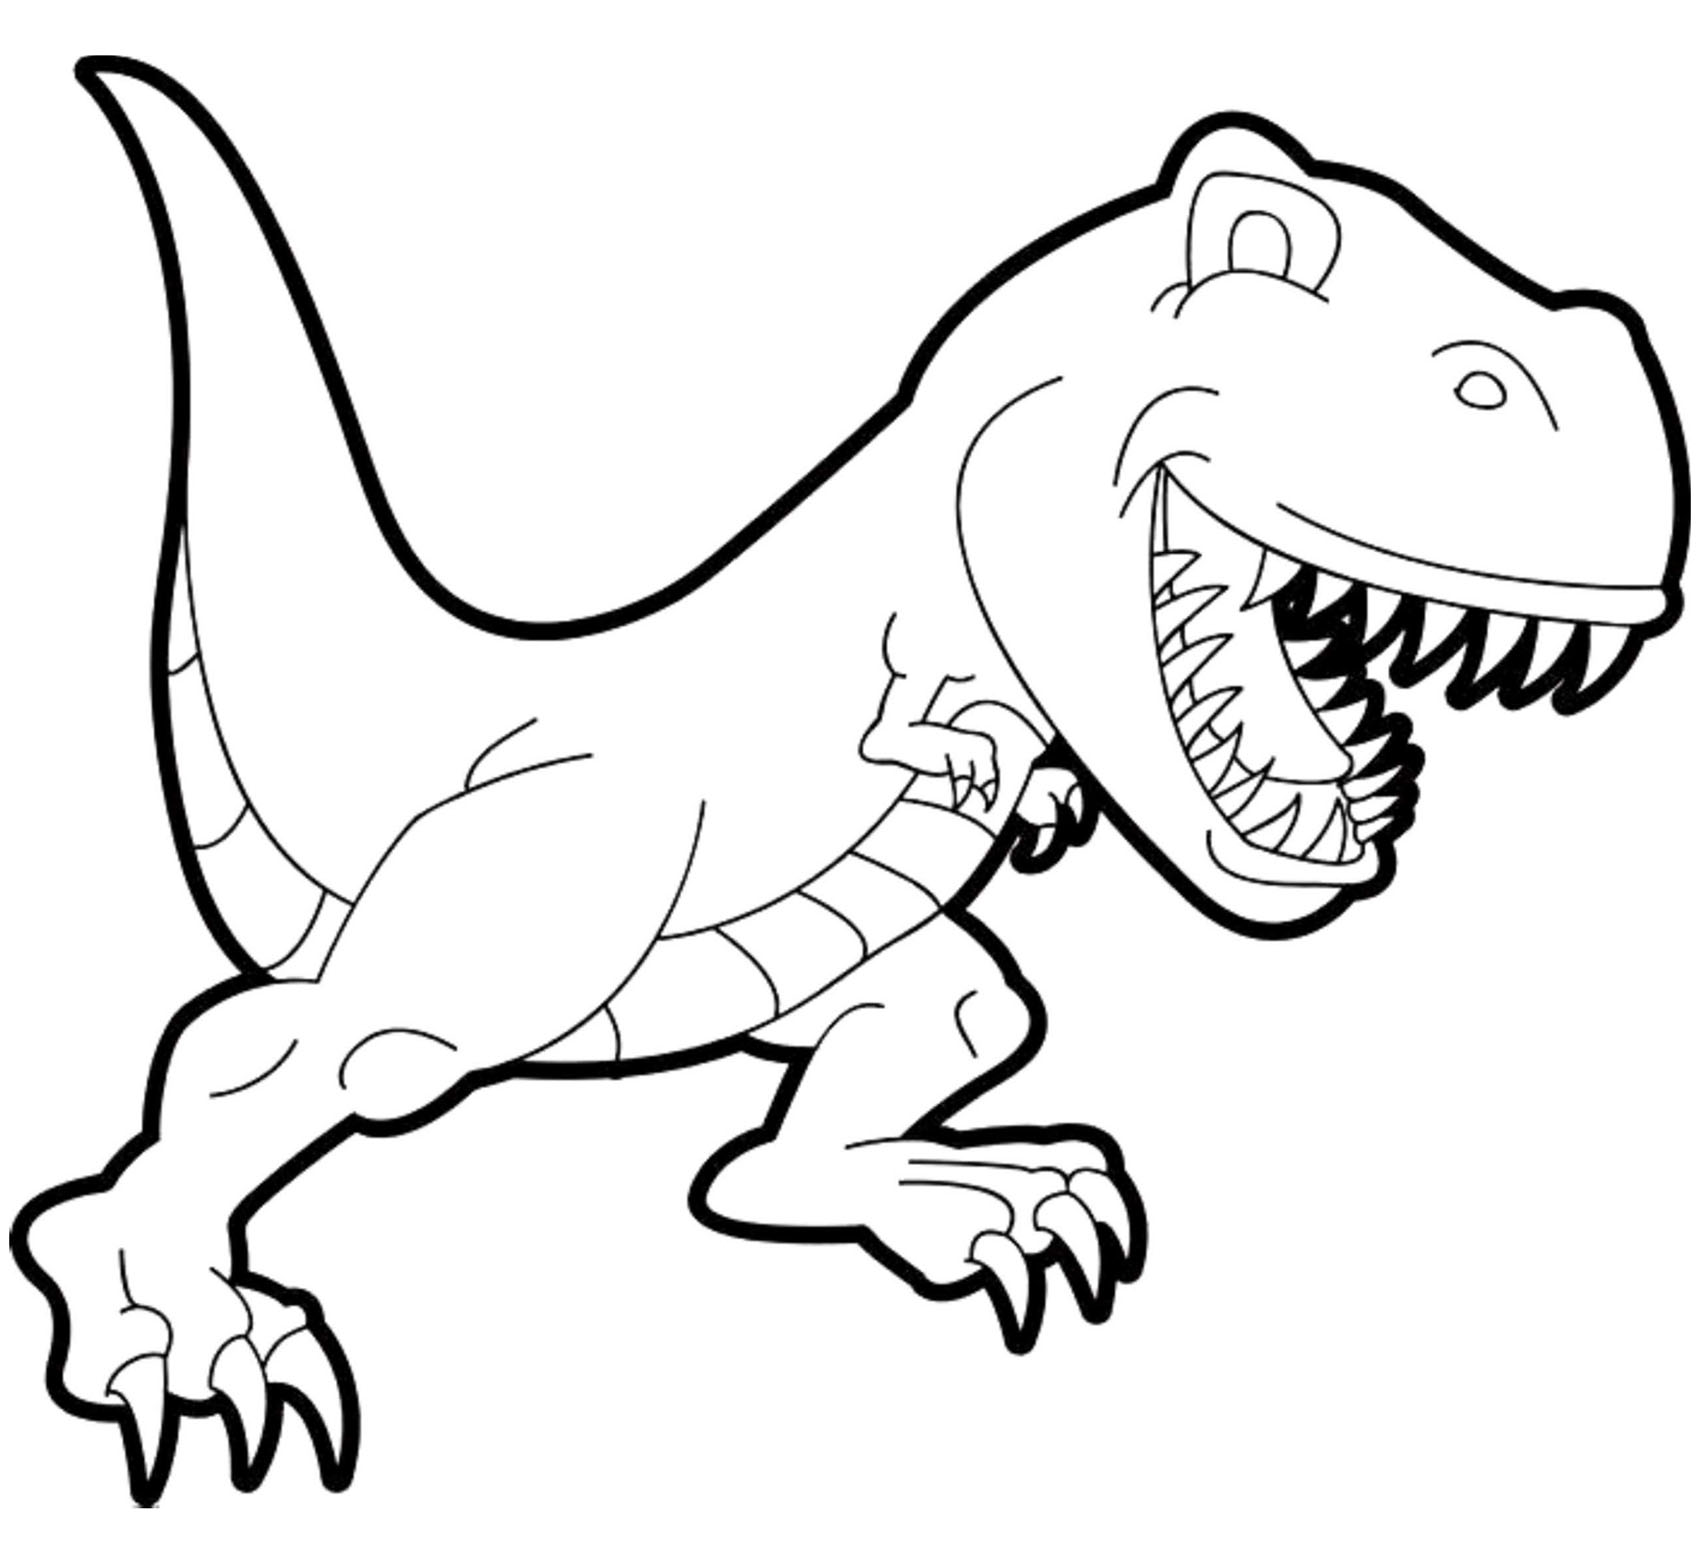 free printable dinosaur coloring pages dinosaurs free to color for kids tyrannosaur rex cartoon pages coloring dinosaur free printable